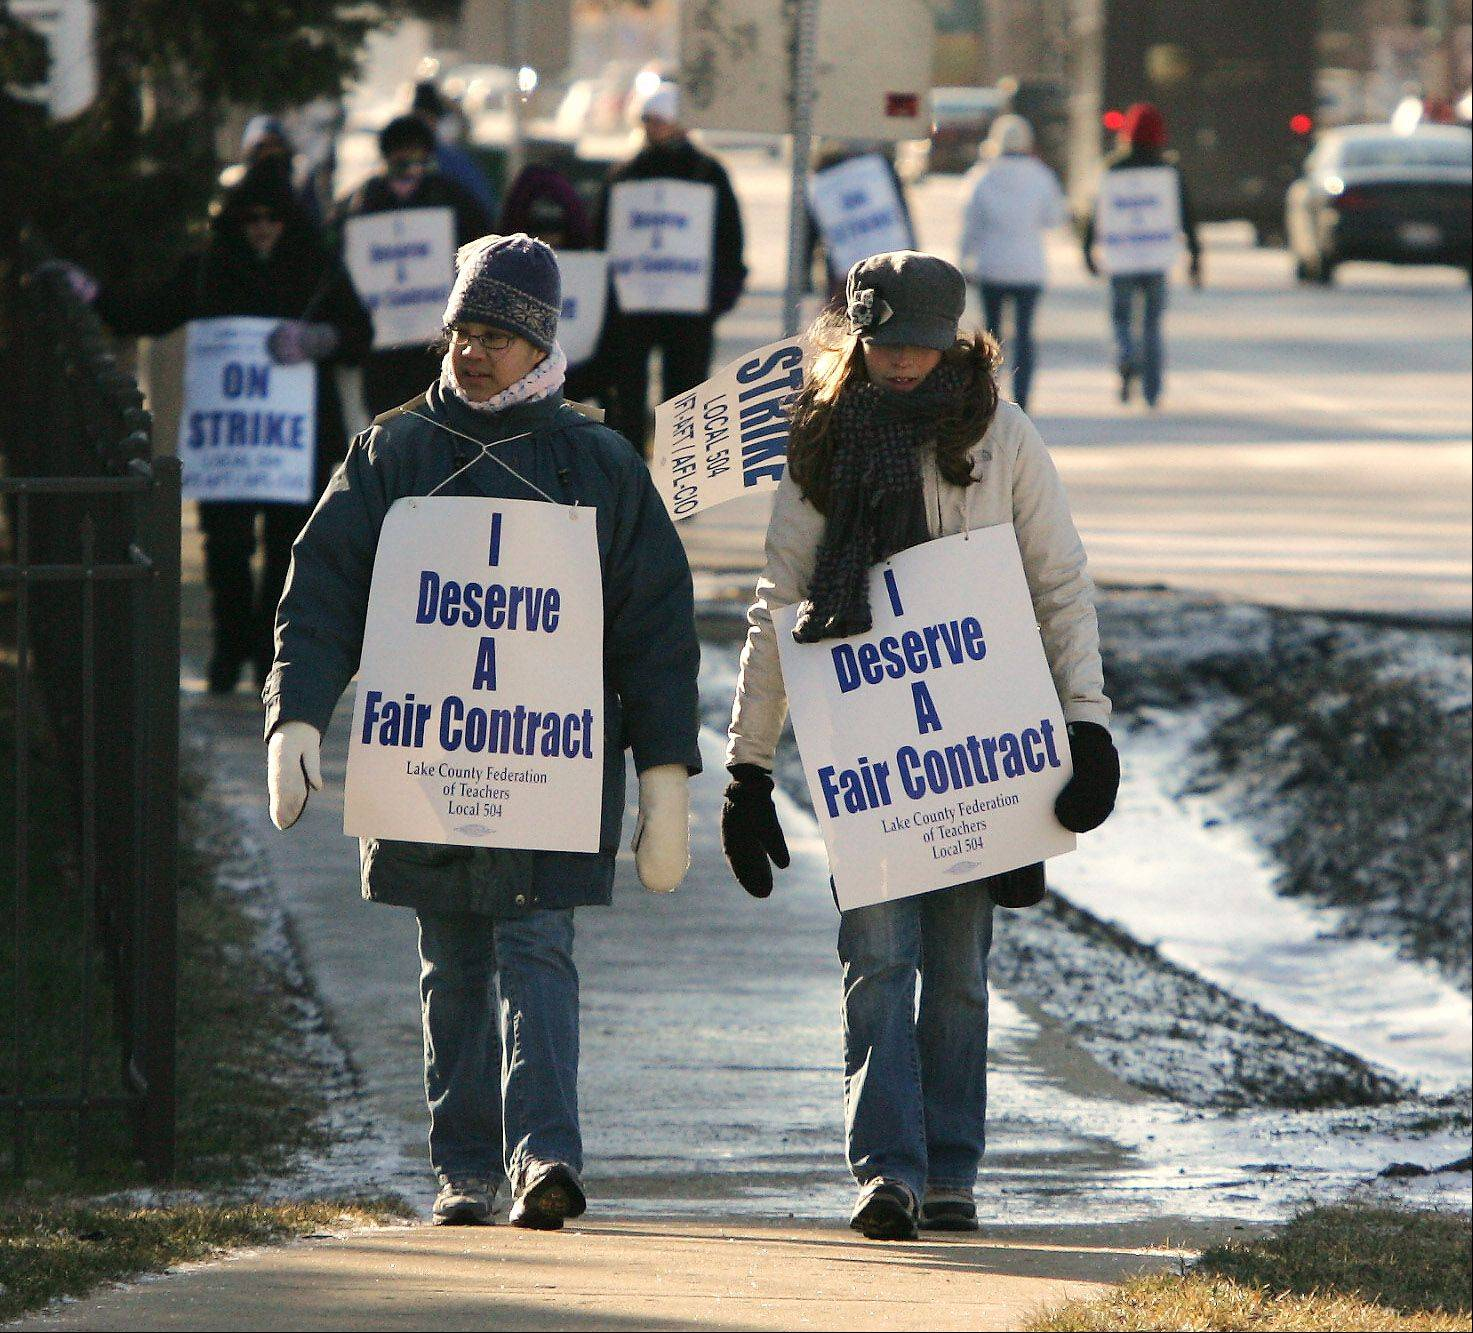 Grayslake Middle School teachers Pei Pump, left, and Nicole McRee join other teachers walking the picket line in the cold Wednesday near the school. Teachers from Grayslake Elementary District 46 went on strike after talks with the school board broke down Tuesday night.